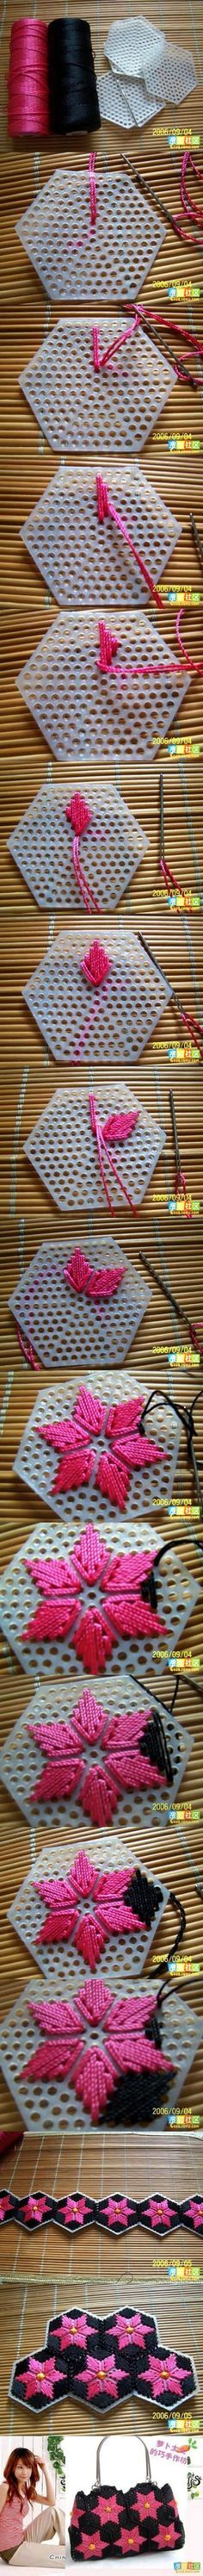 DIY Pretty Handbag from Stitch on Plastic Canvas | iCreativeIdeas.com Like Us on Facebook ==> https://www.facebook.com/icreativeideas